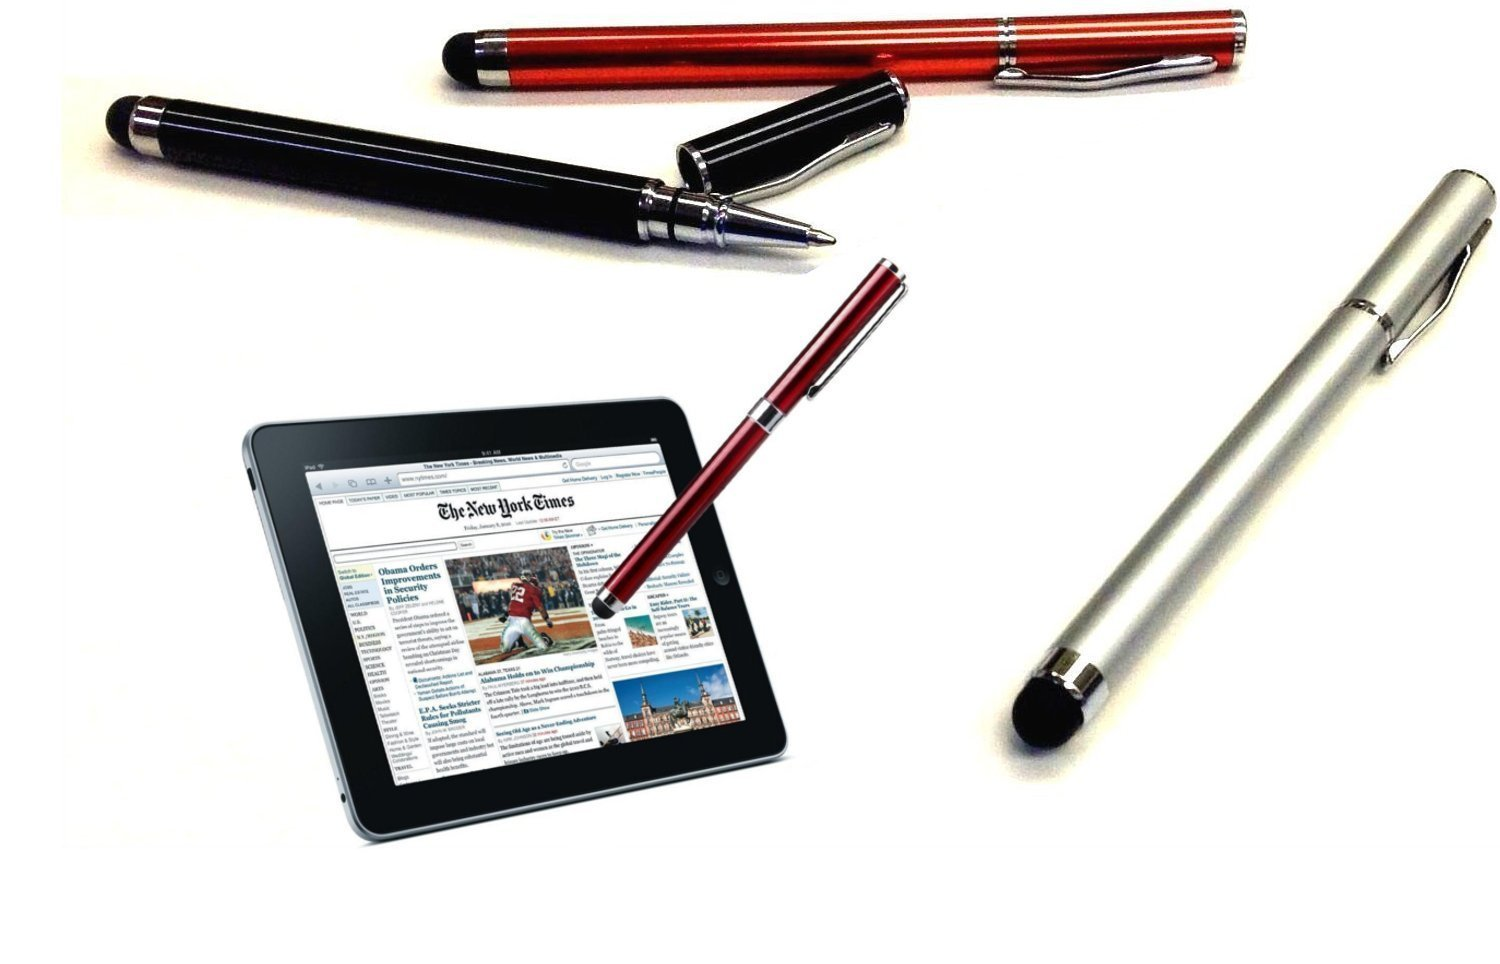 delicate PRO Kyocera DuraForce Custom High Sensitivity Touch Stylus + Writing Pen with Ink! [3 Pack - Silver Red Black]